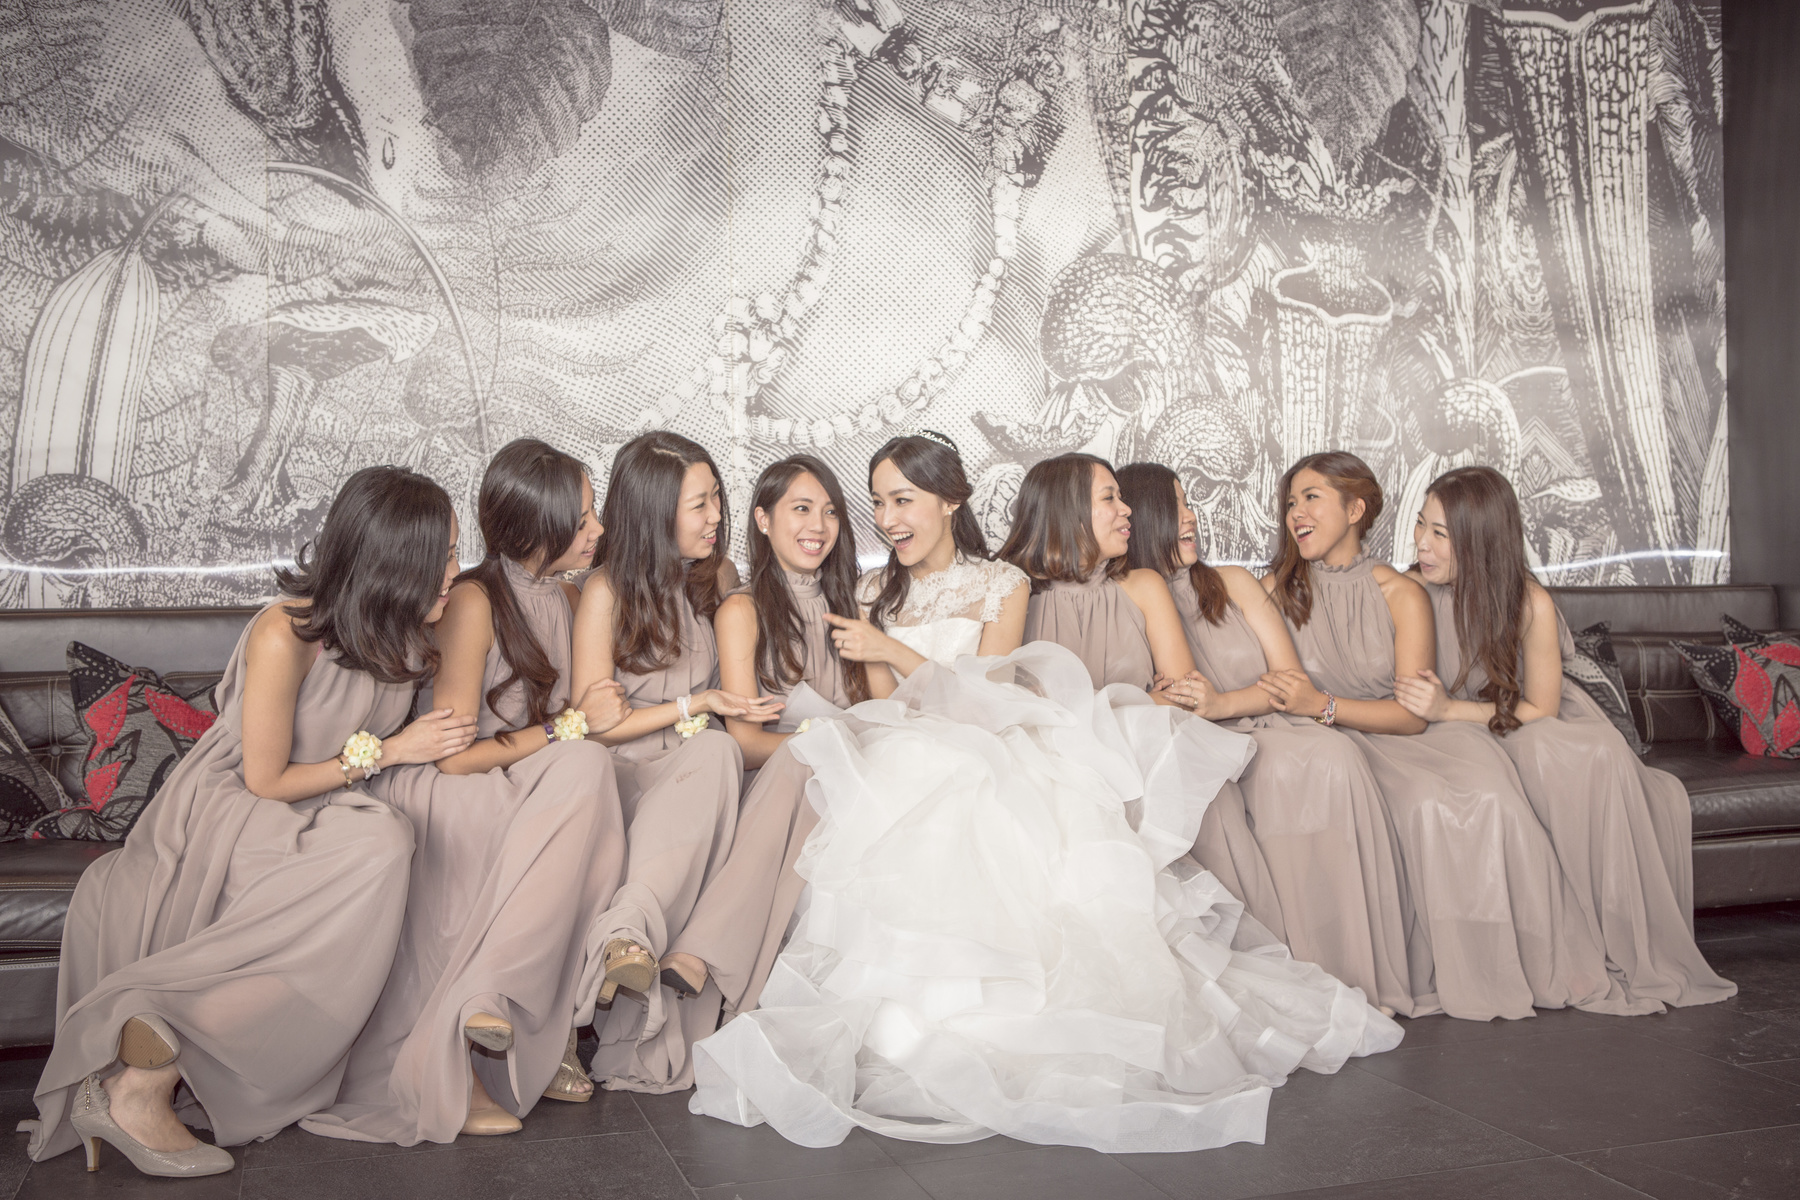 KnW IMAGE AND PHOTODESIGN Big Day 婚攝 @ 婚享會 Bespoke Wedding